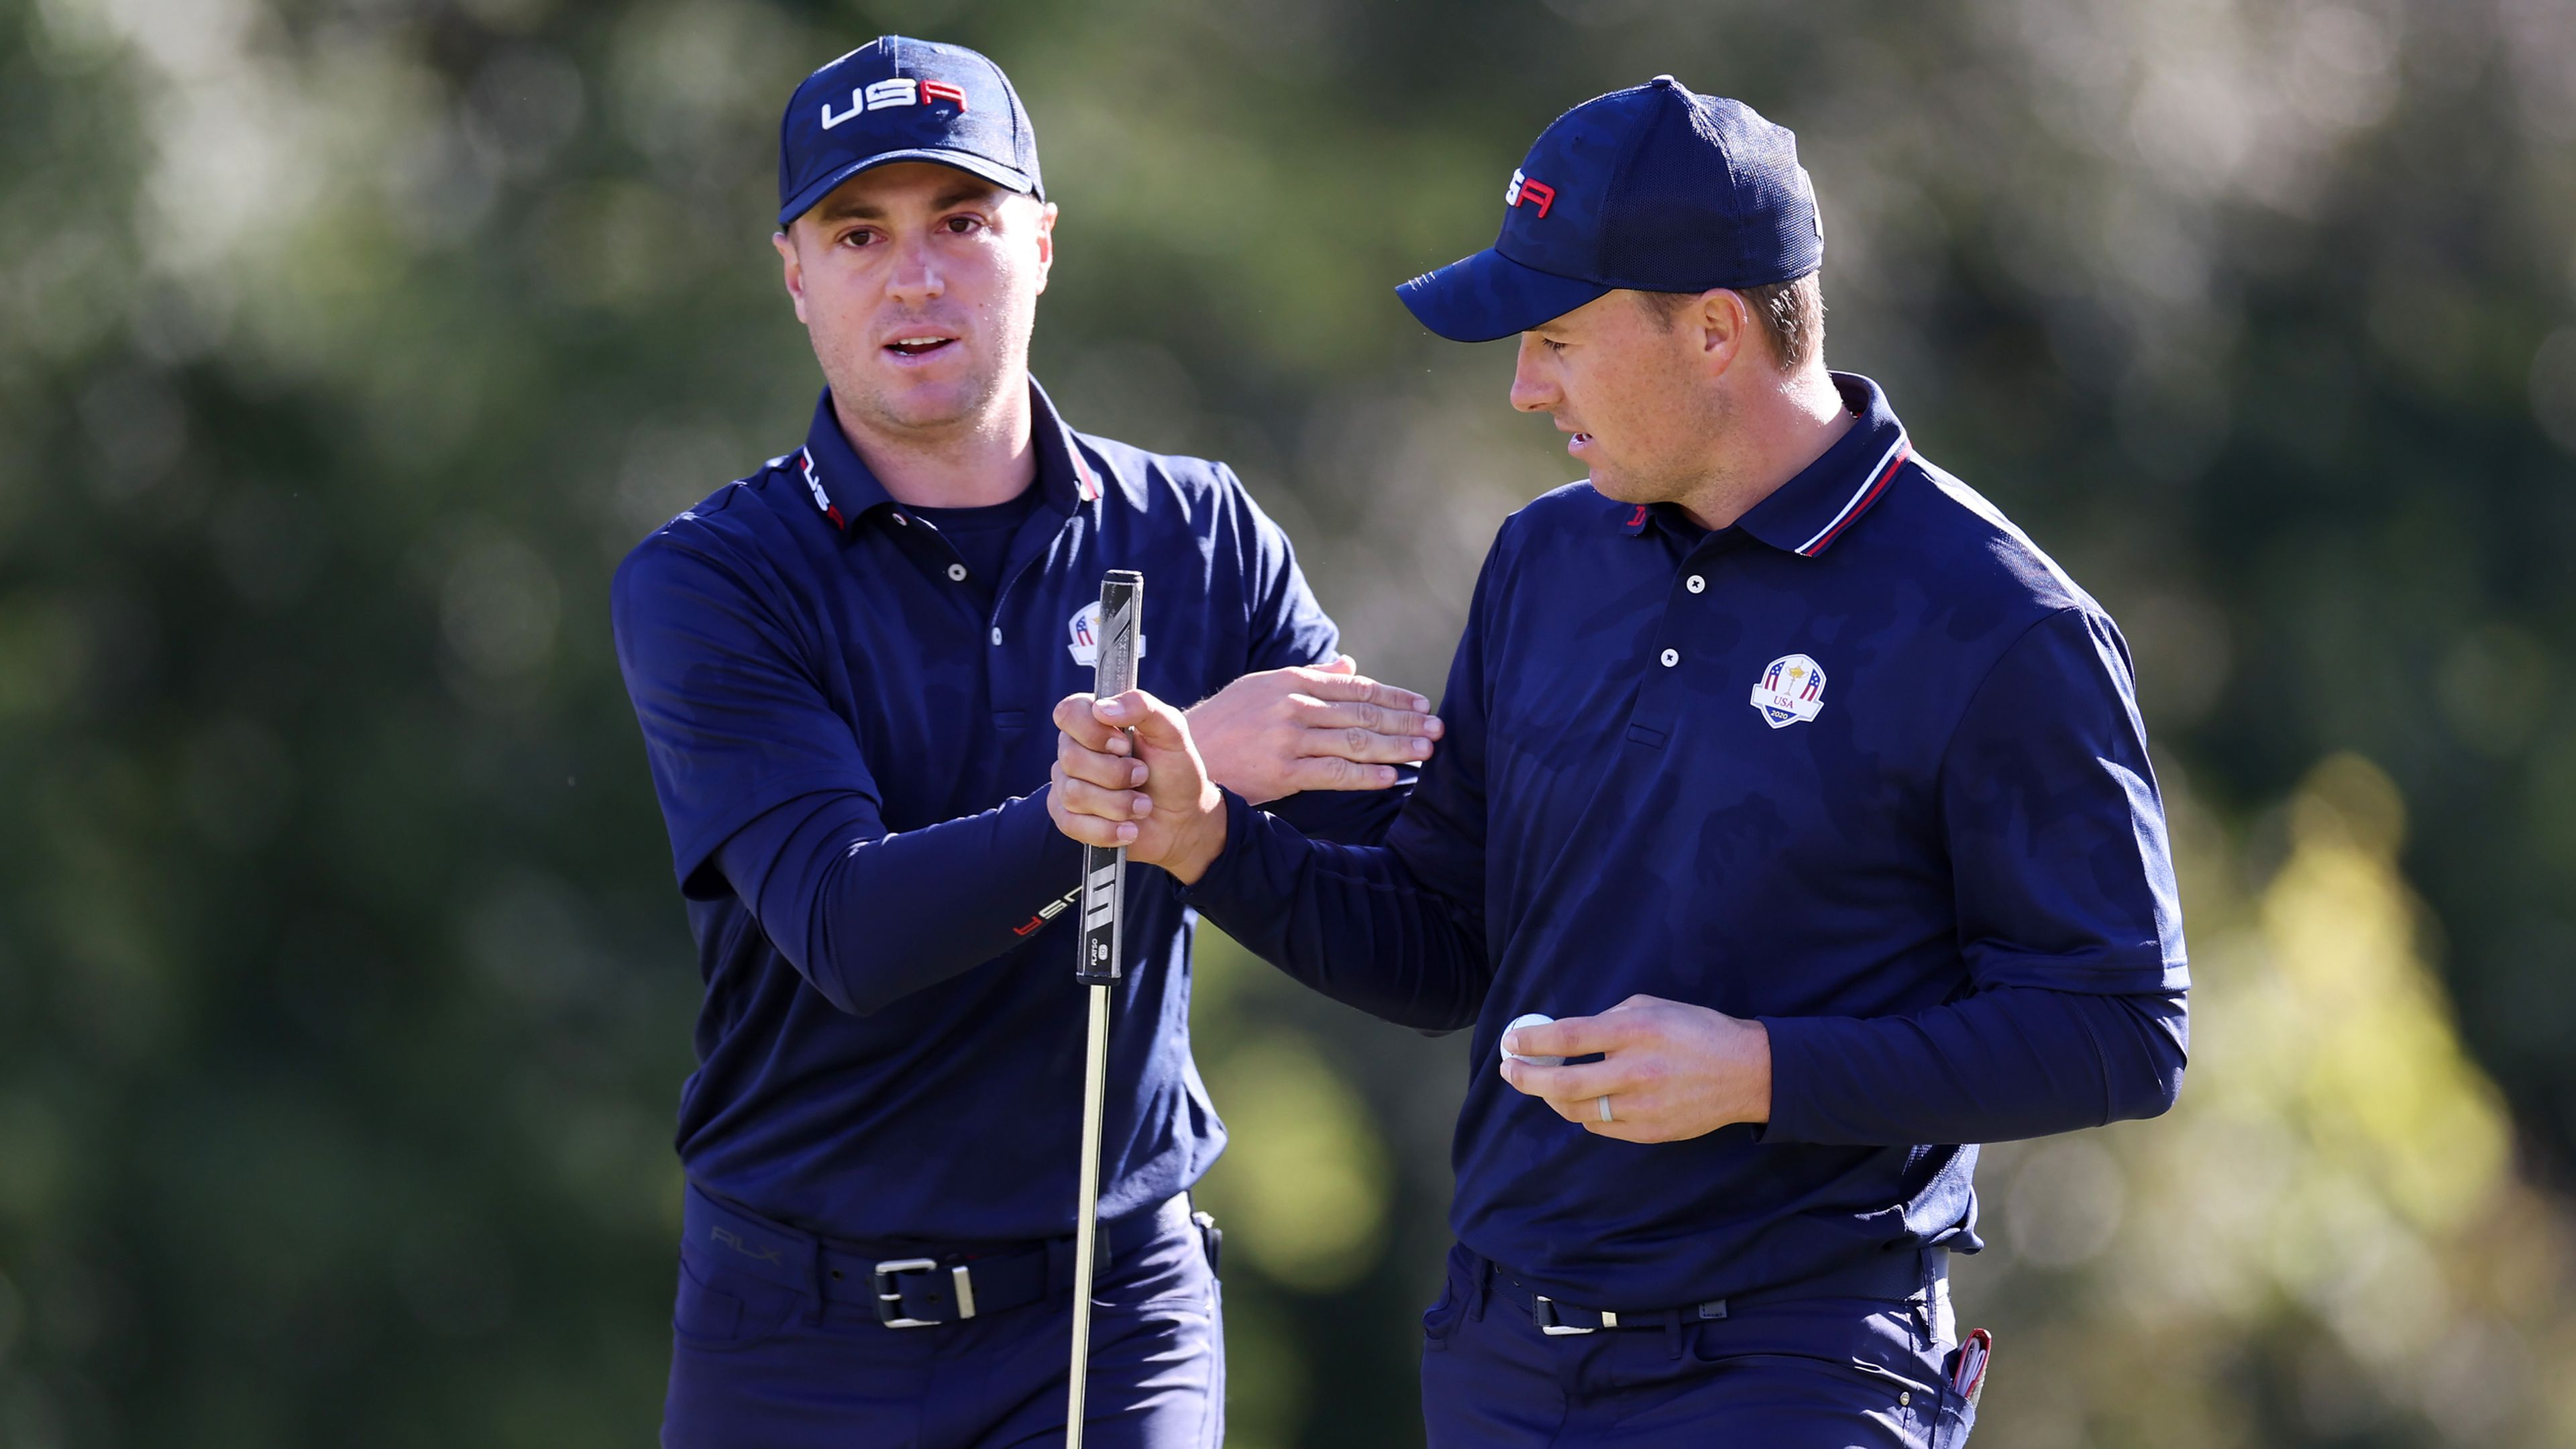 Justin Thomas chugs beer as USA takes record lead over Europe in Ryder Cup